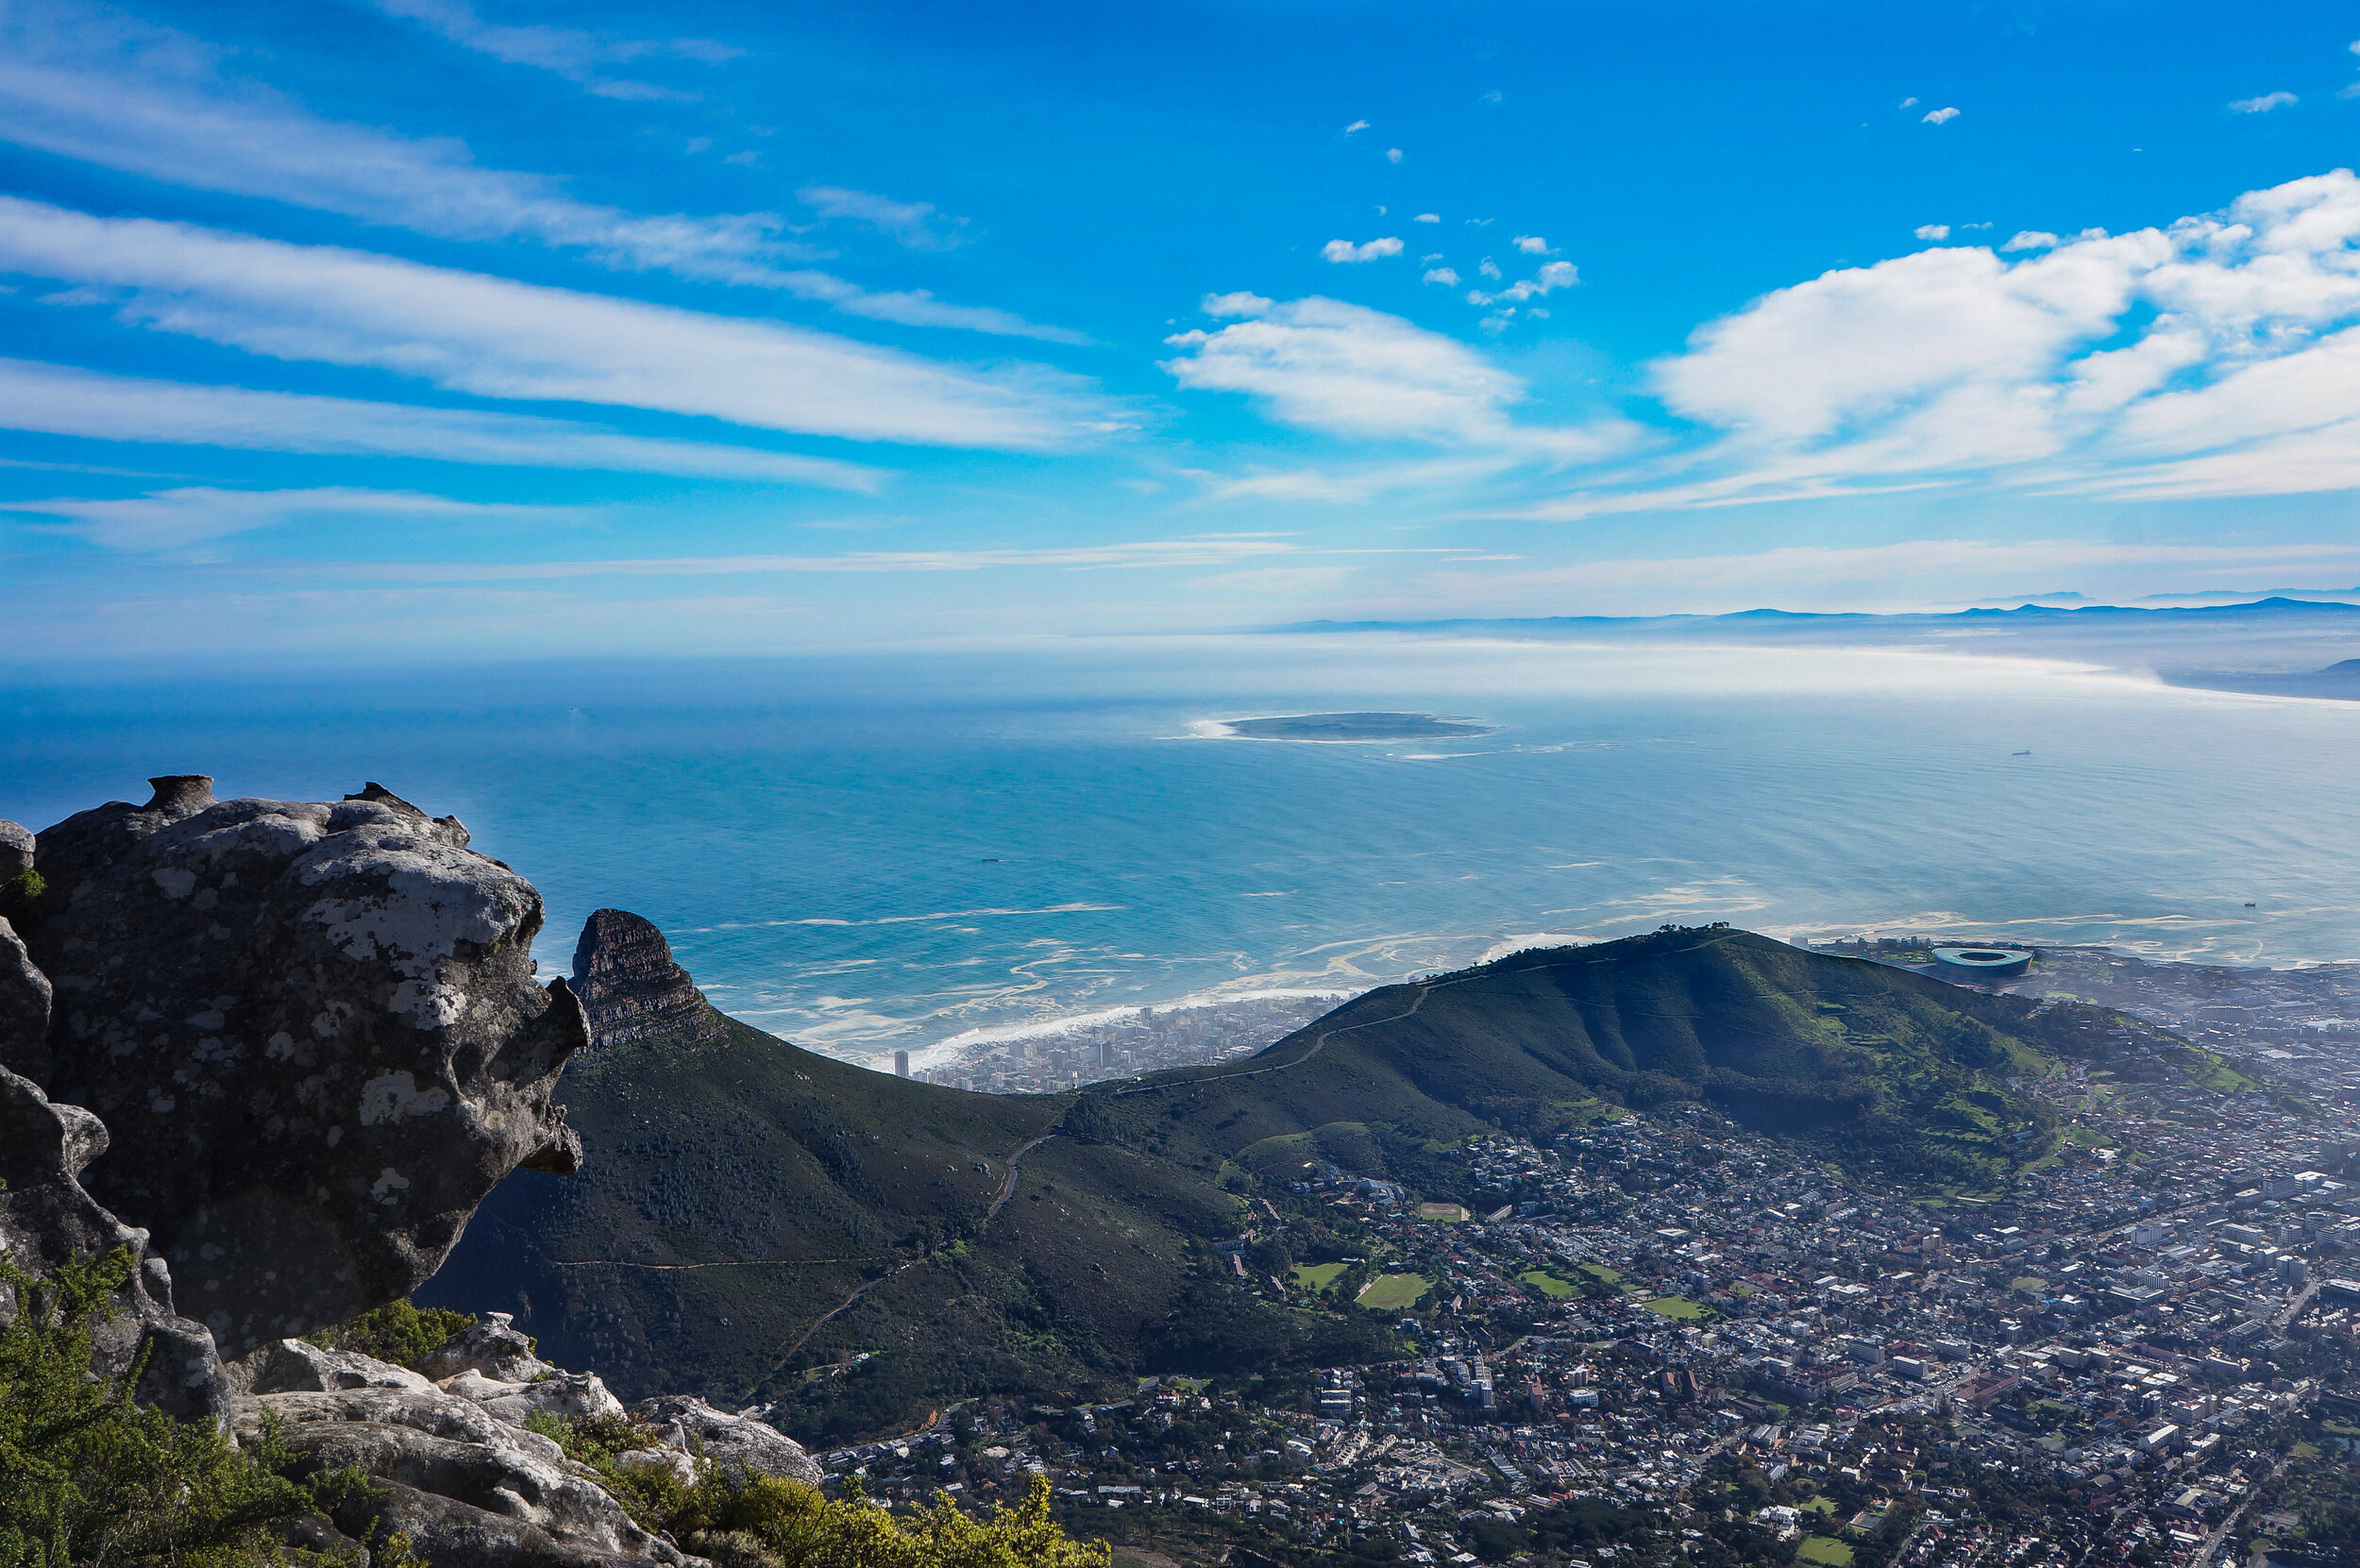 Atlantic Ocean blues from the top of Table Mountain